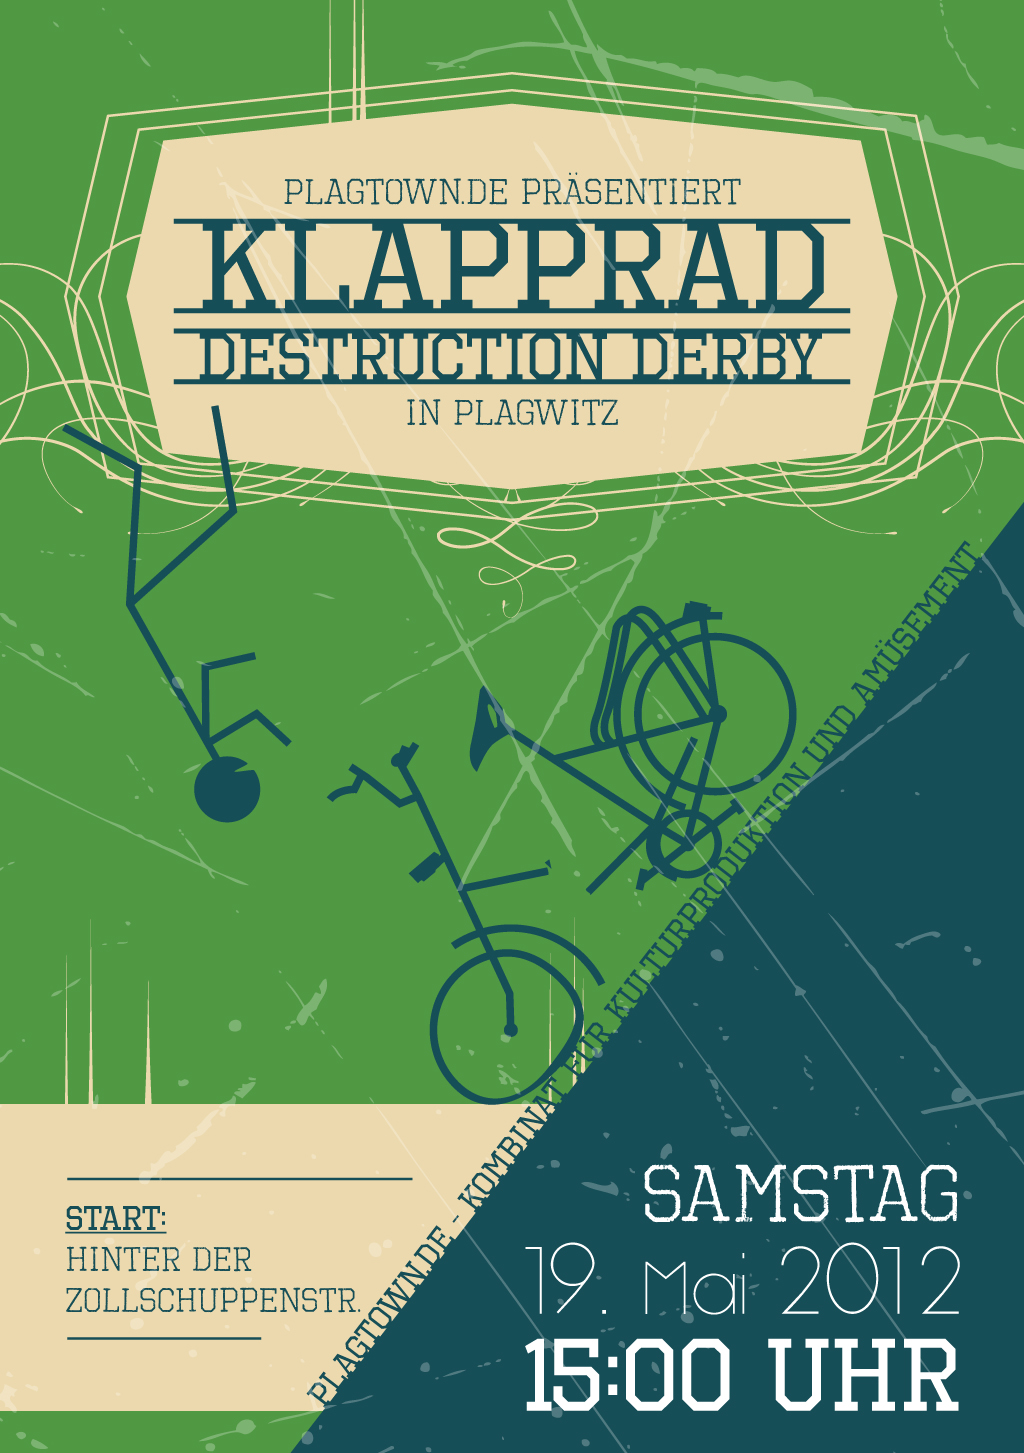 Flyer - Klapprad Destruction Derby